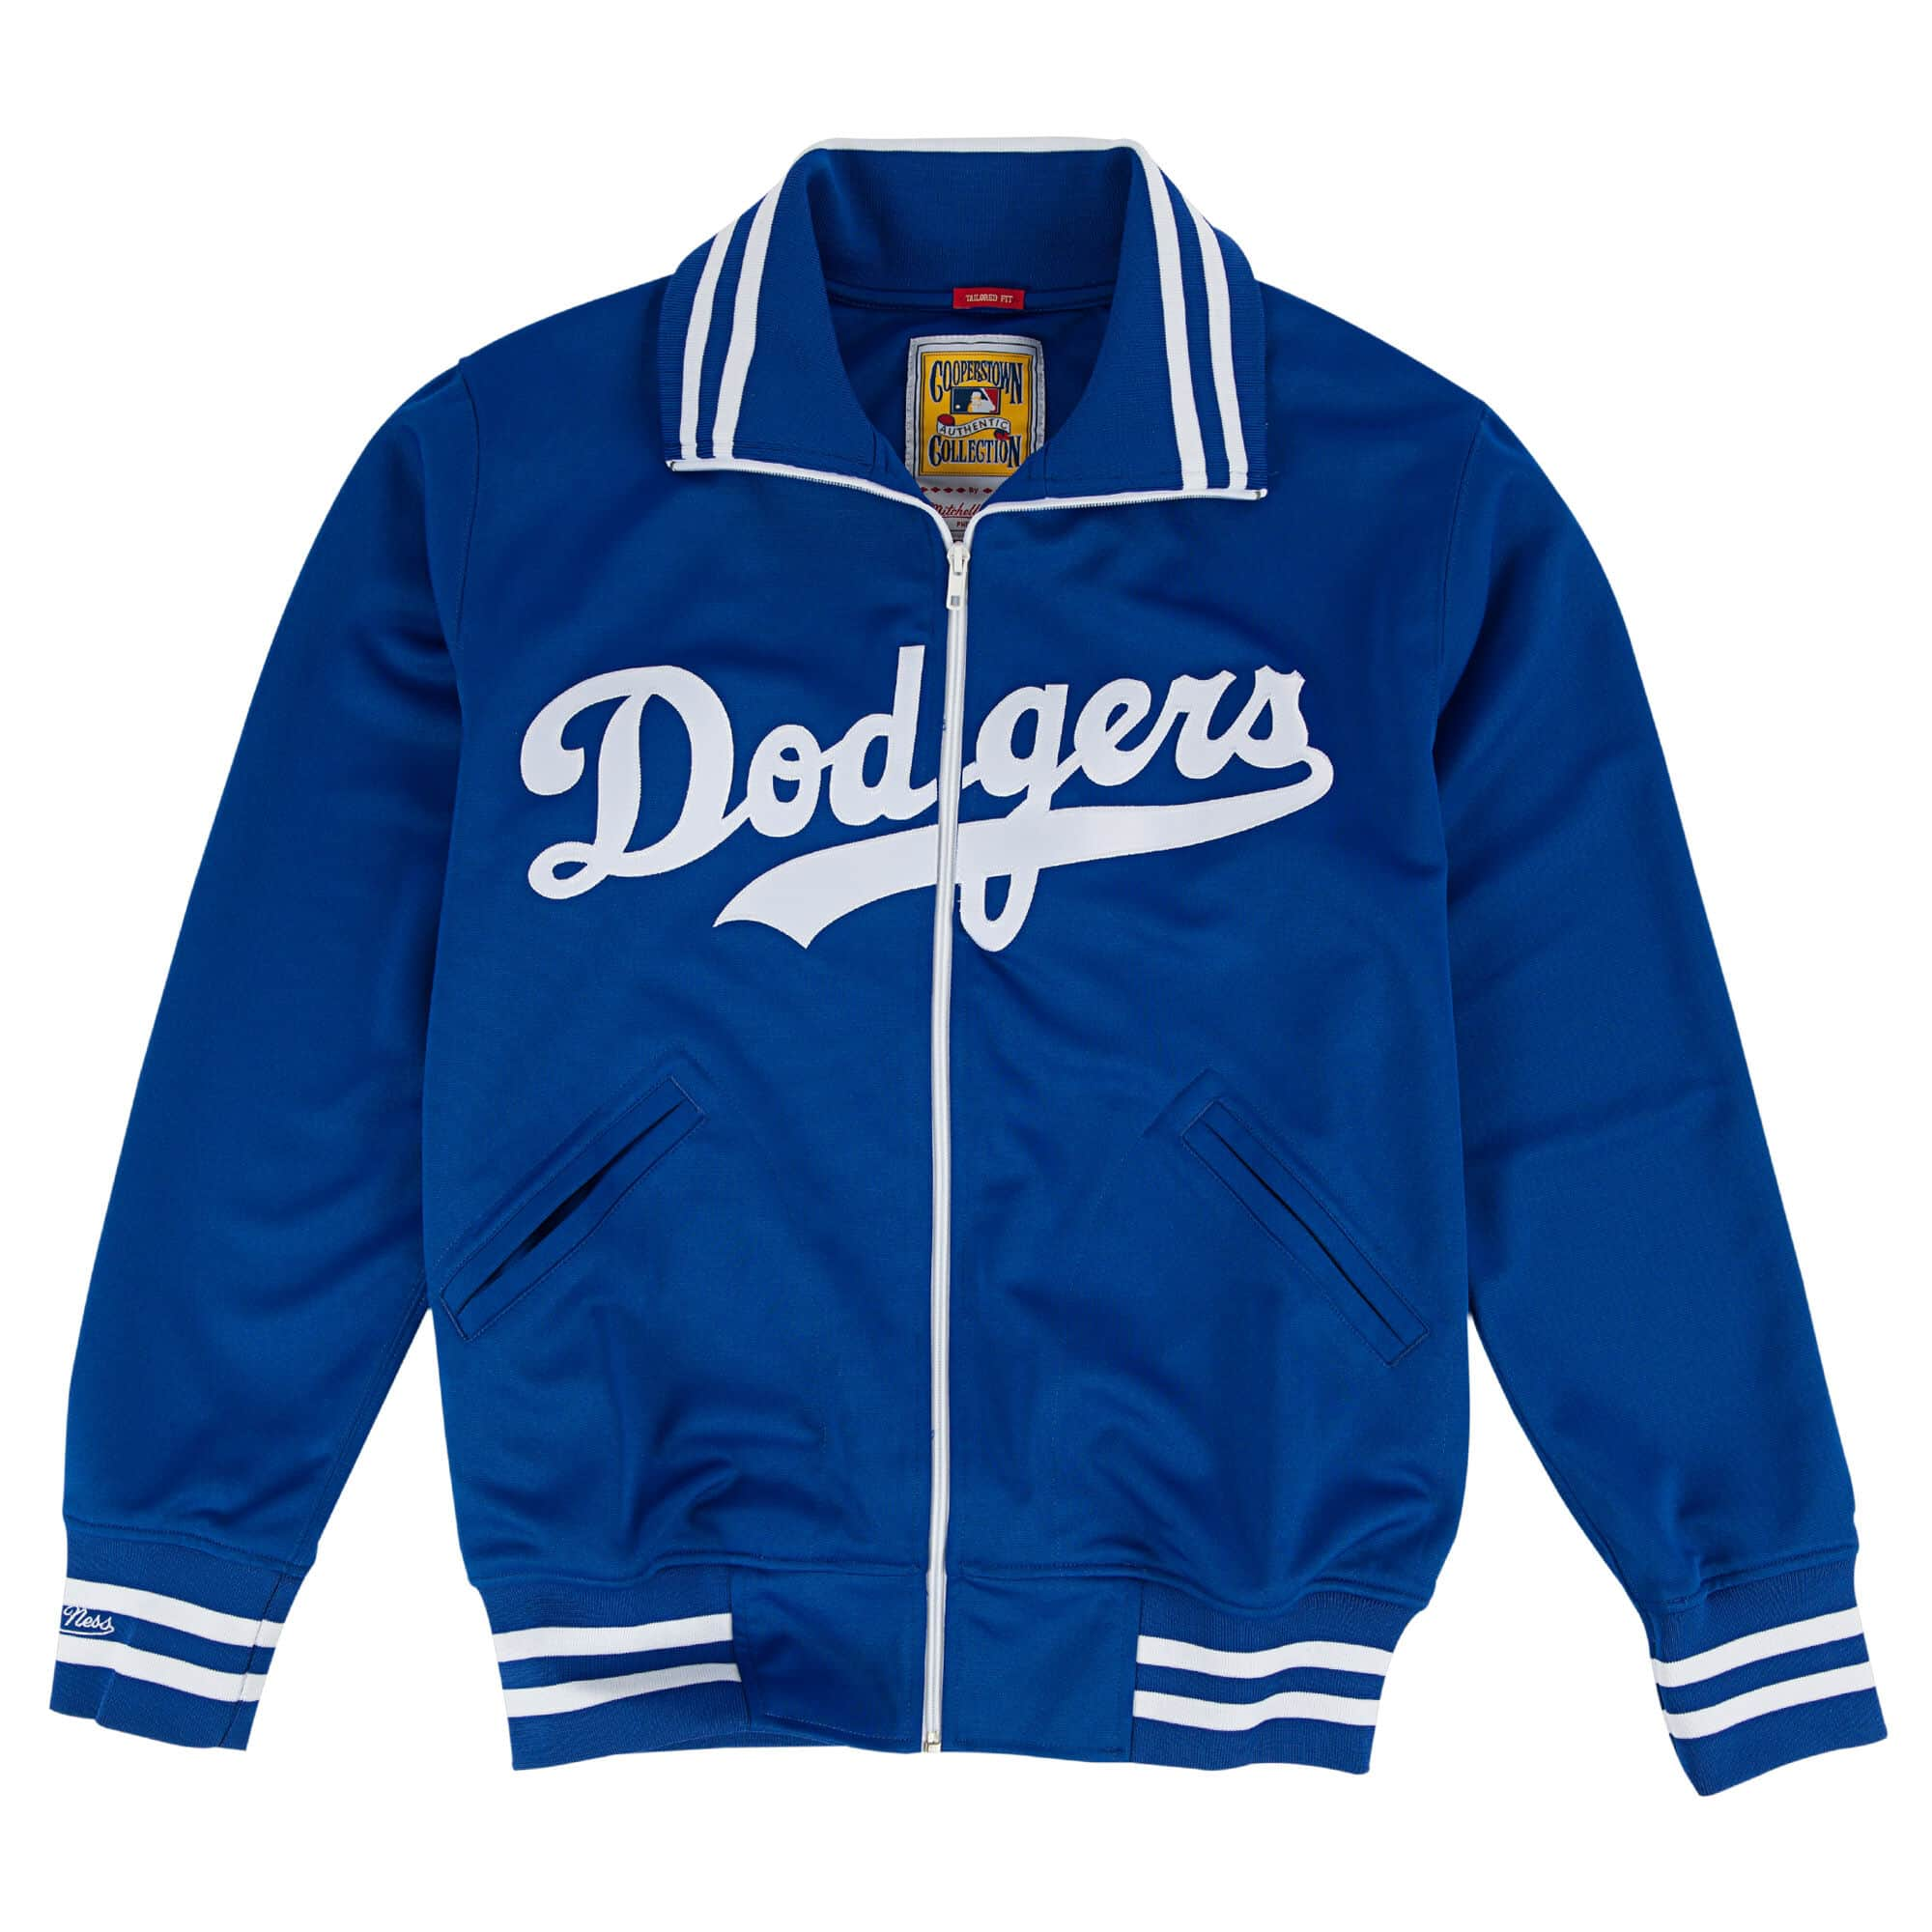 Authentic BP Jacket Los Angeles Dodgers 1981